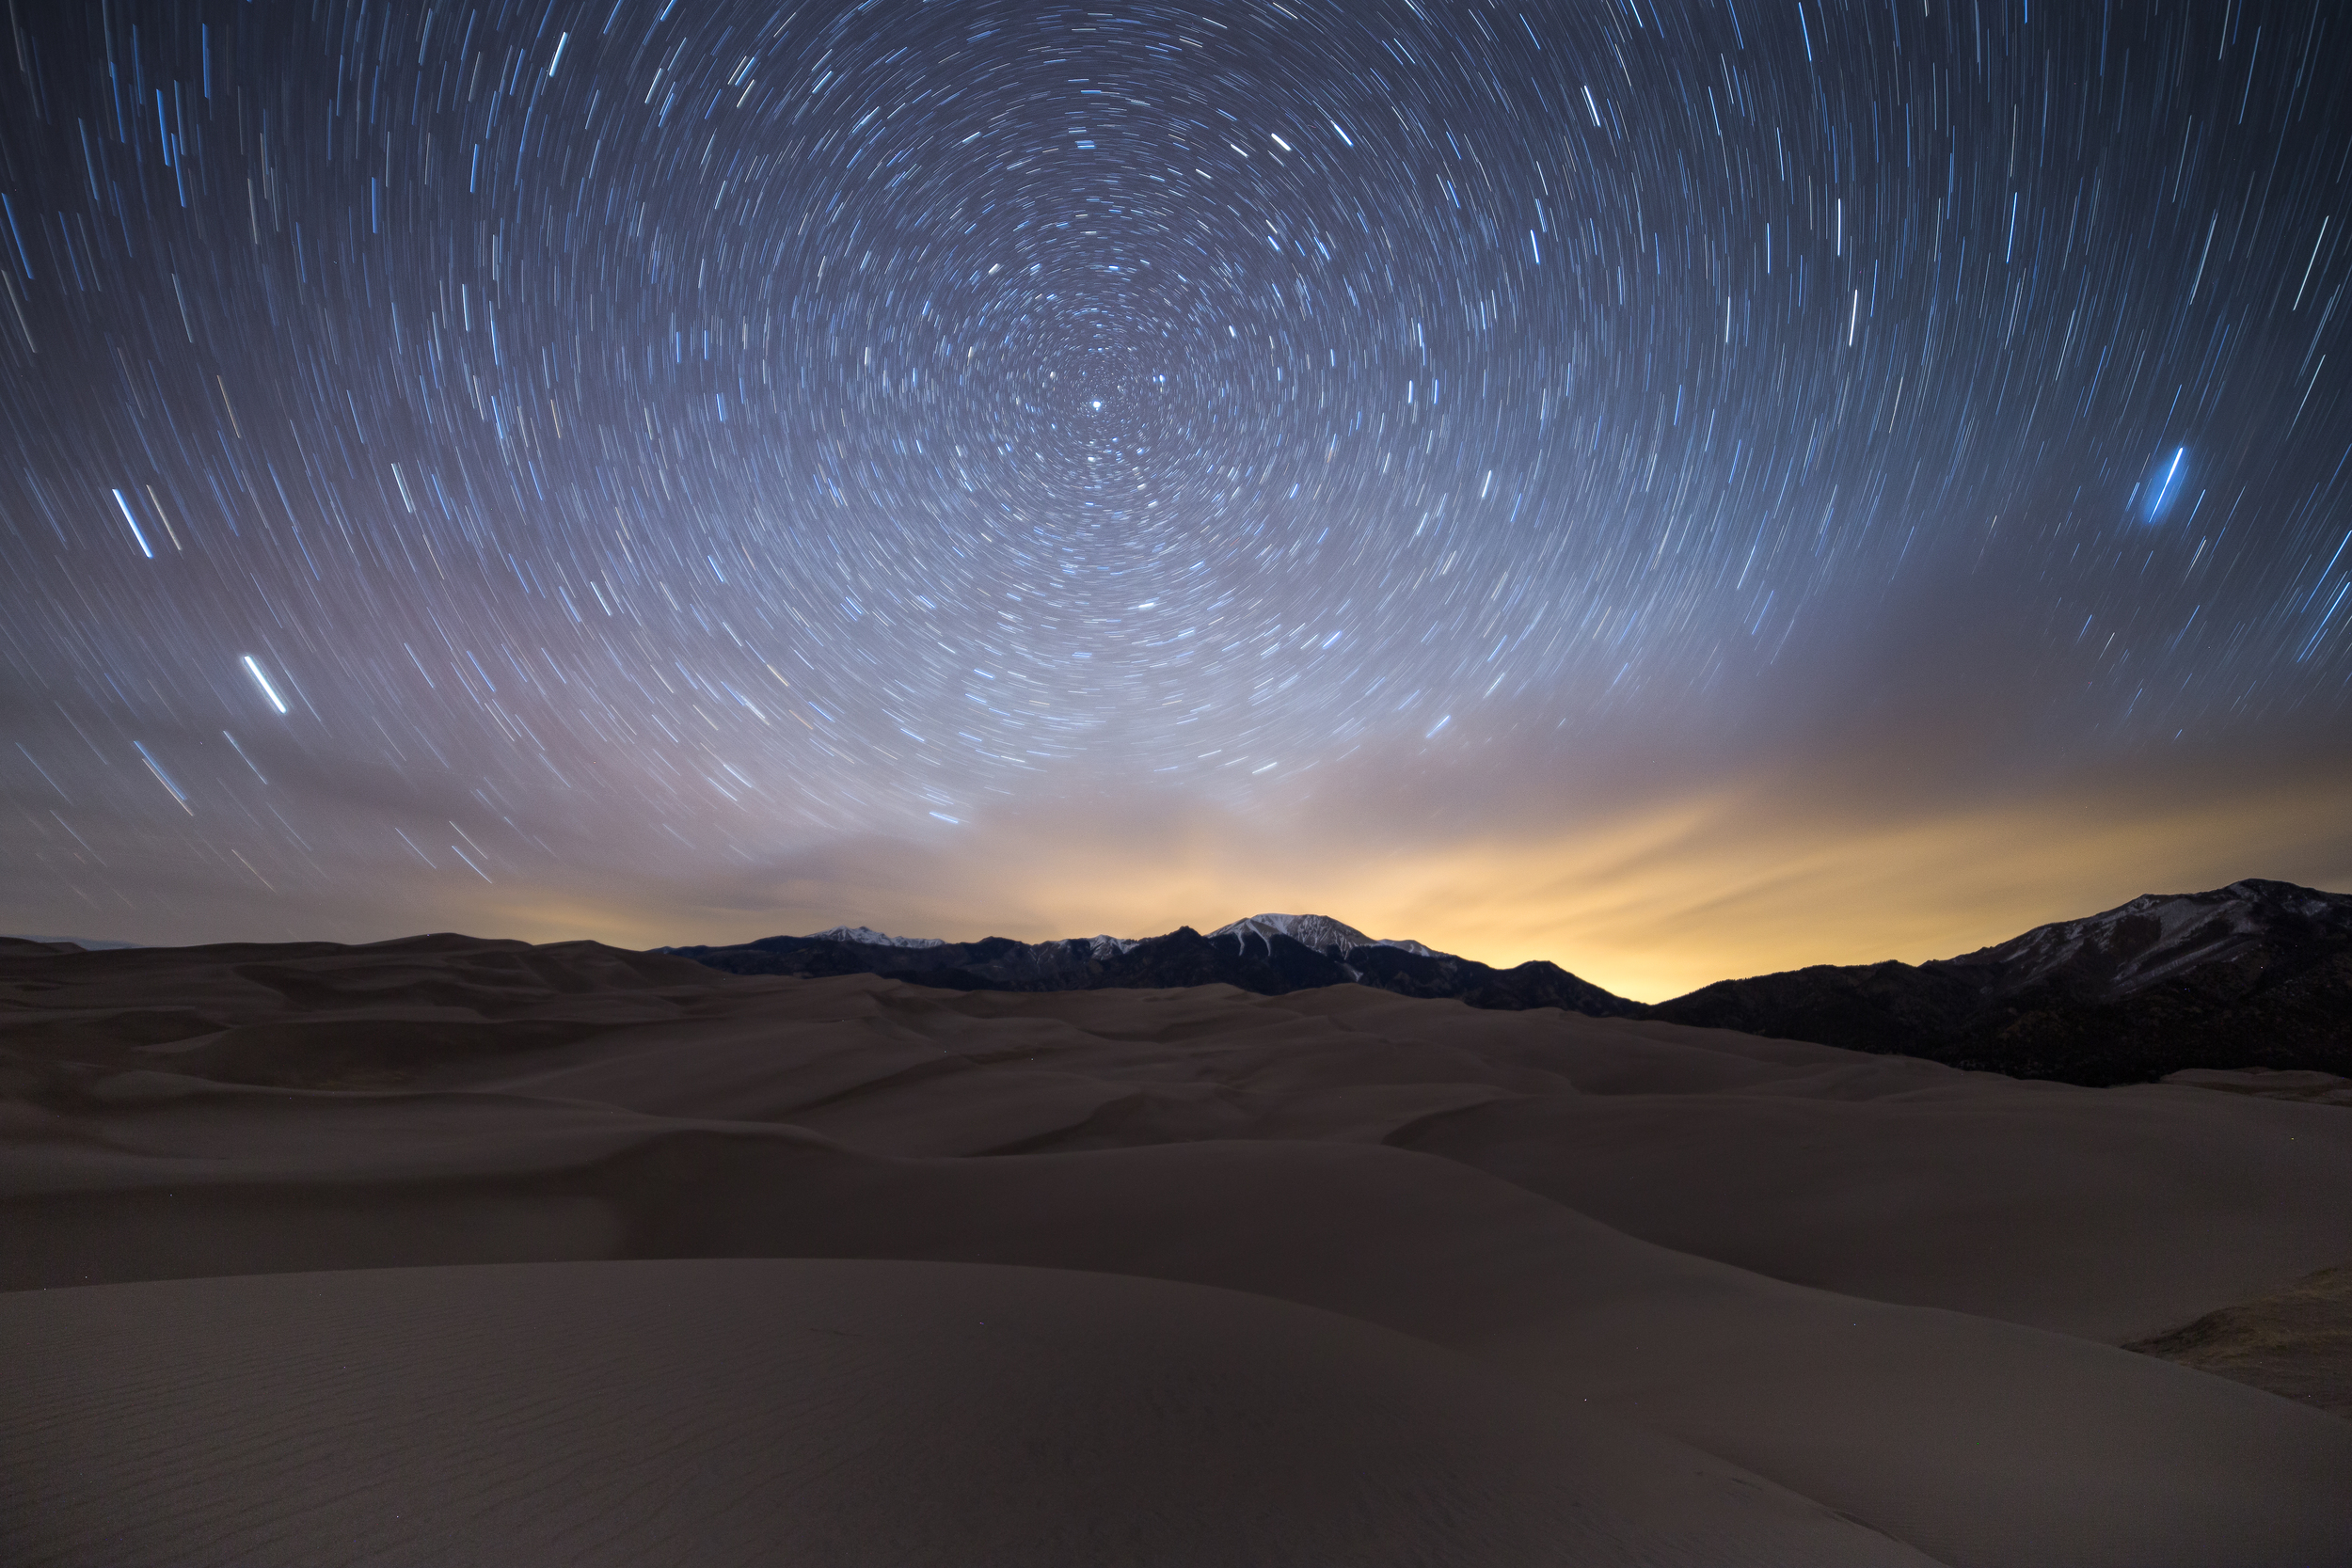 """Canon 6d, Rokinon 14mm, f/2.8, ISO 640, 916"""". Great Sand Dunes National Park, 3/8/16, 2:00am."""